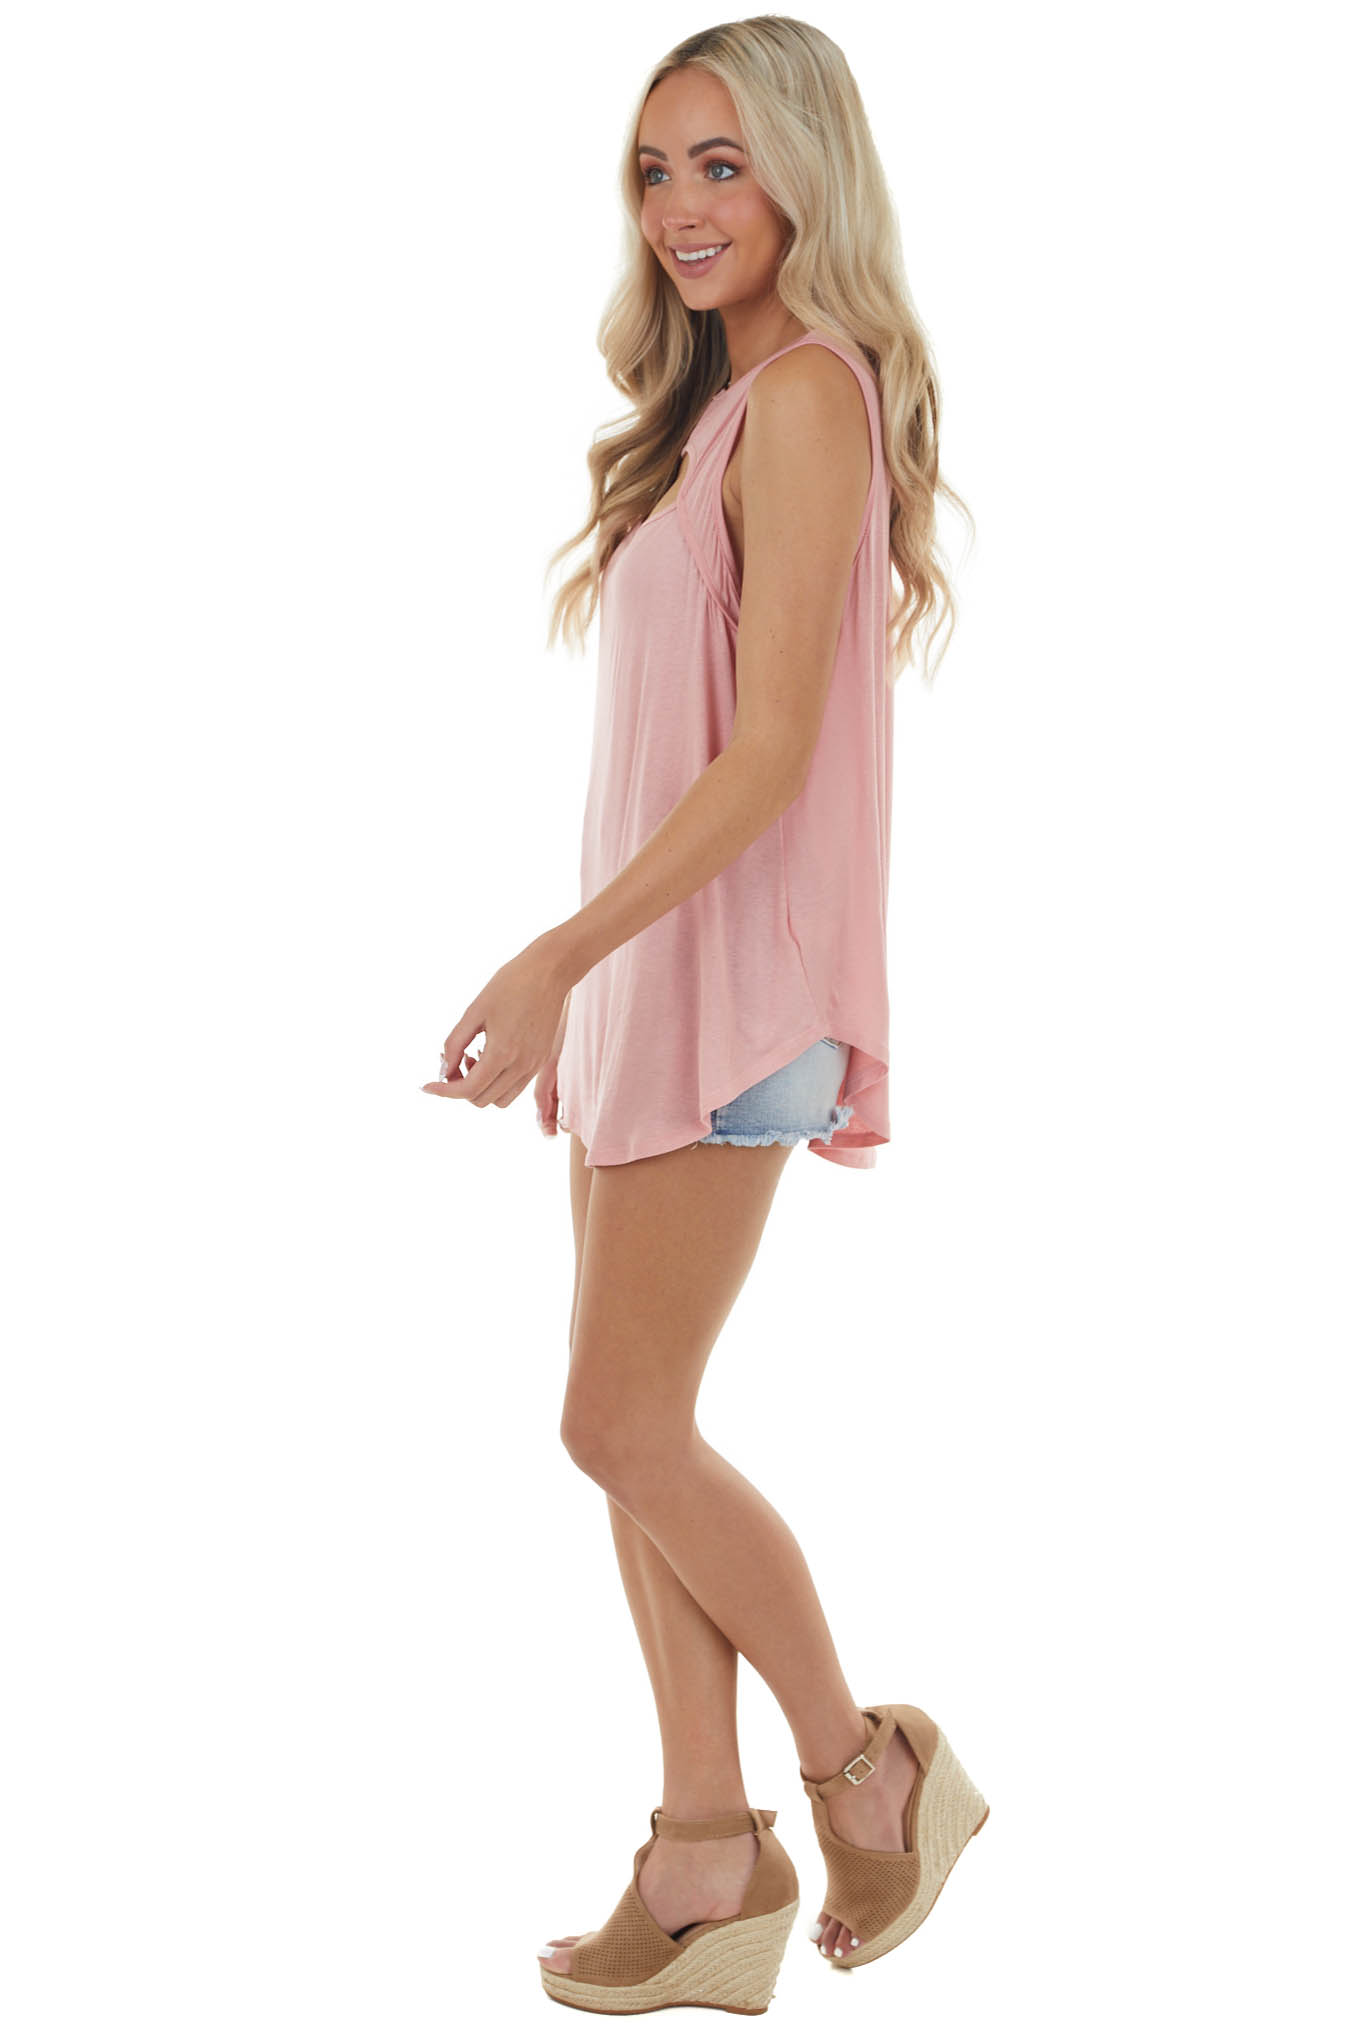 Baby Pink Sleeveless Stretchy Knit Top with Cut Out Detail